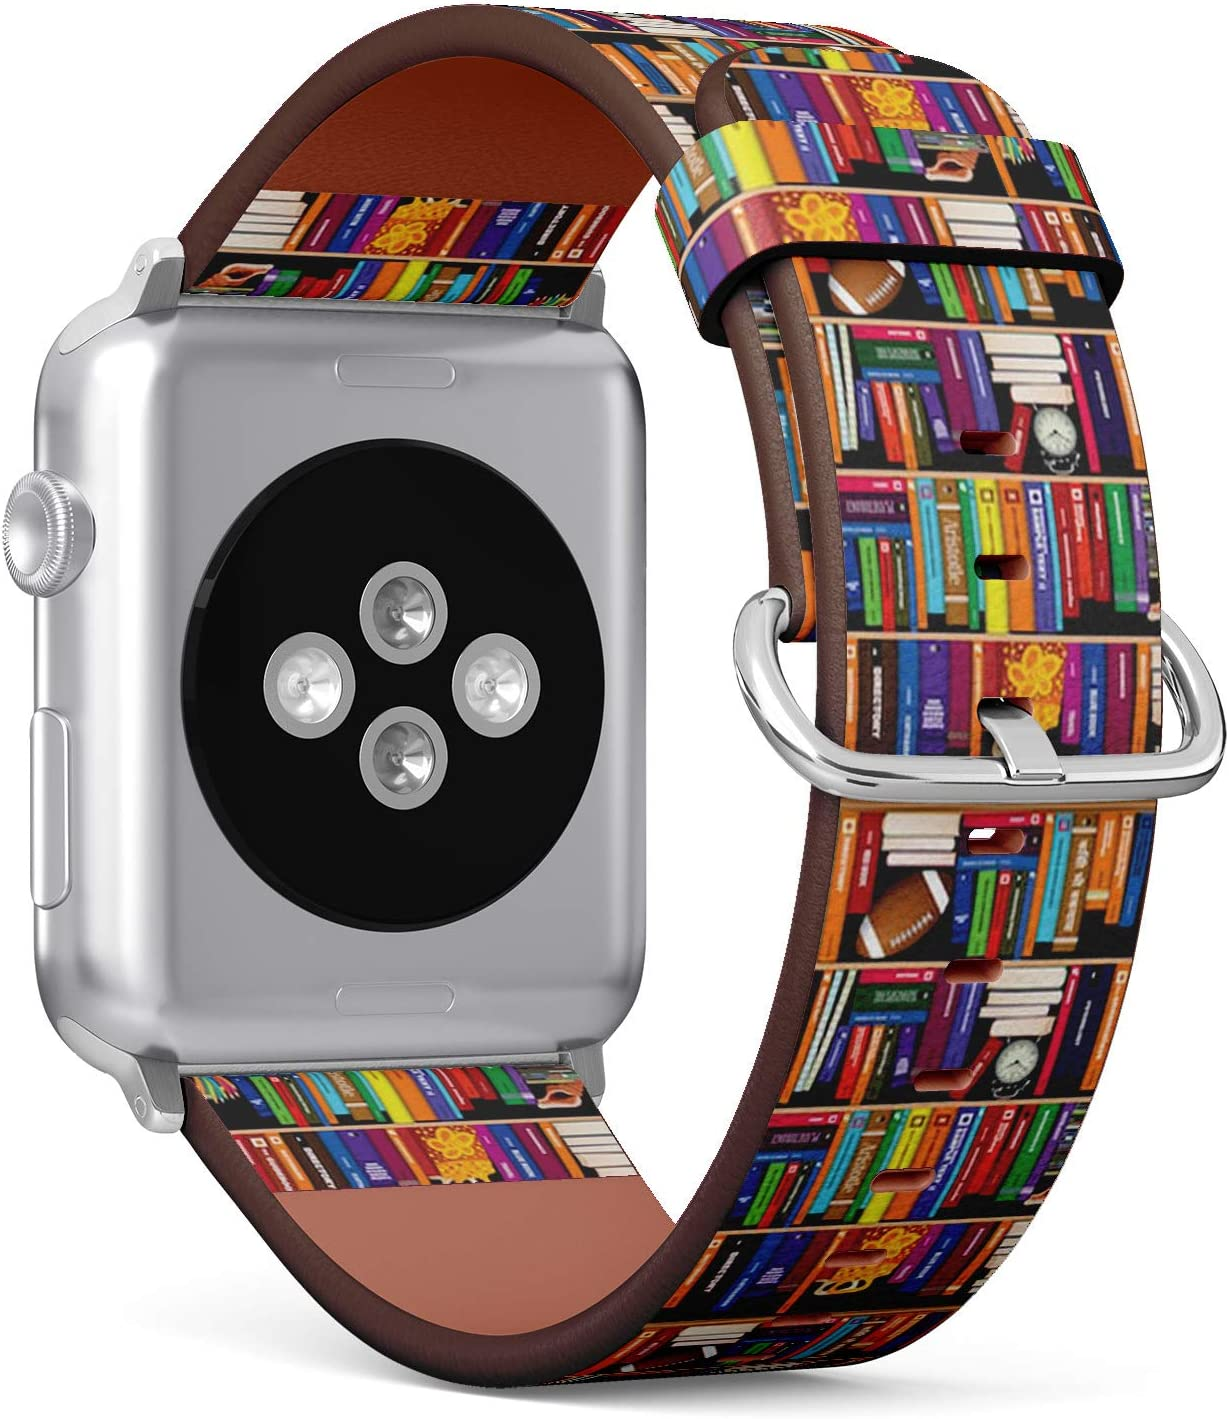 Compatible with Apple Watch Series 5, 4, 3, 2, 1 (Small Version 38/40 mm) Leather Wristband Bracelet Replacement Accessory Band + Adapters - Book Shelf